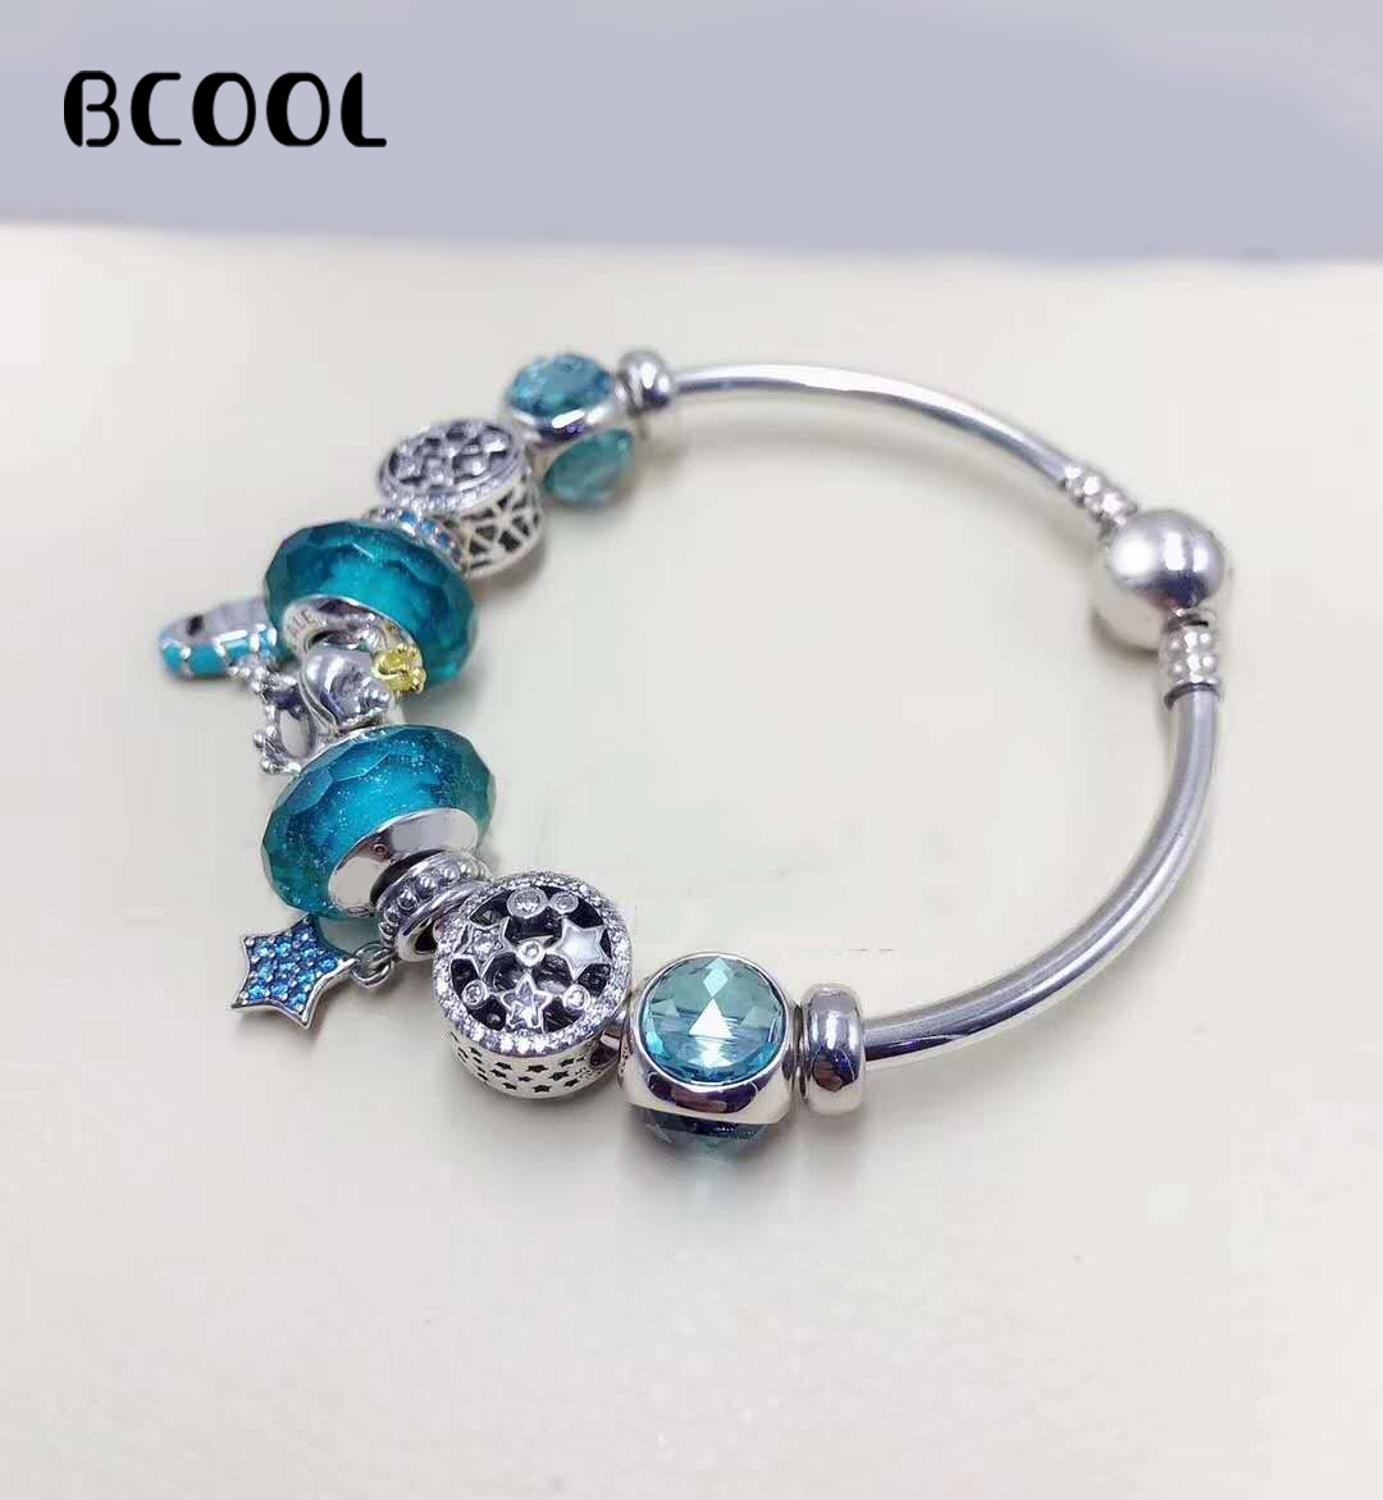 925 Sterling Silver Original Copy 1:1 Fashionable Silver Suitable For Women Marine Series Bracelet Crystal Beads Charm Jewelry925 Sterling Silver Original Copy 1:1 Fashionable Silver Suitable For Women Marine Series Bracelet Crystal Beads Charm Jewelry